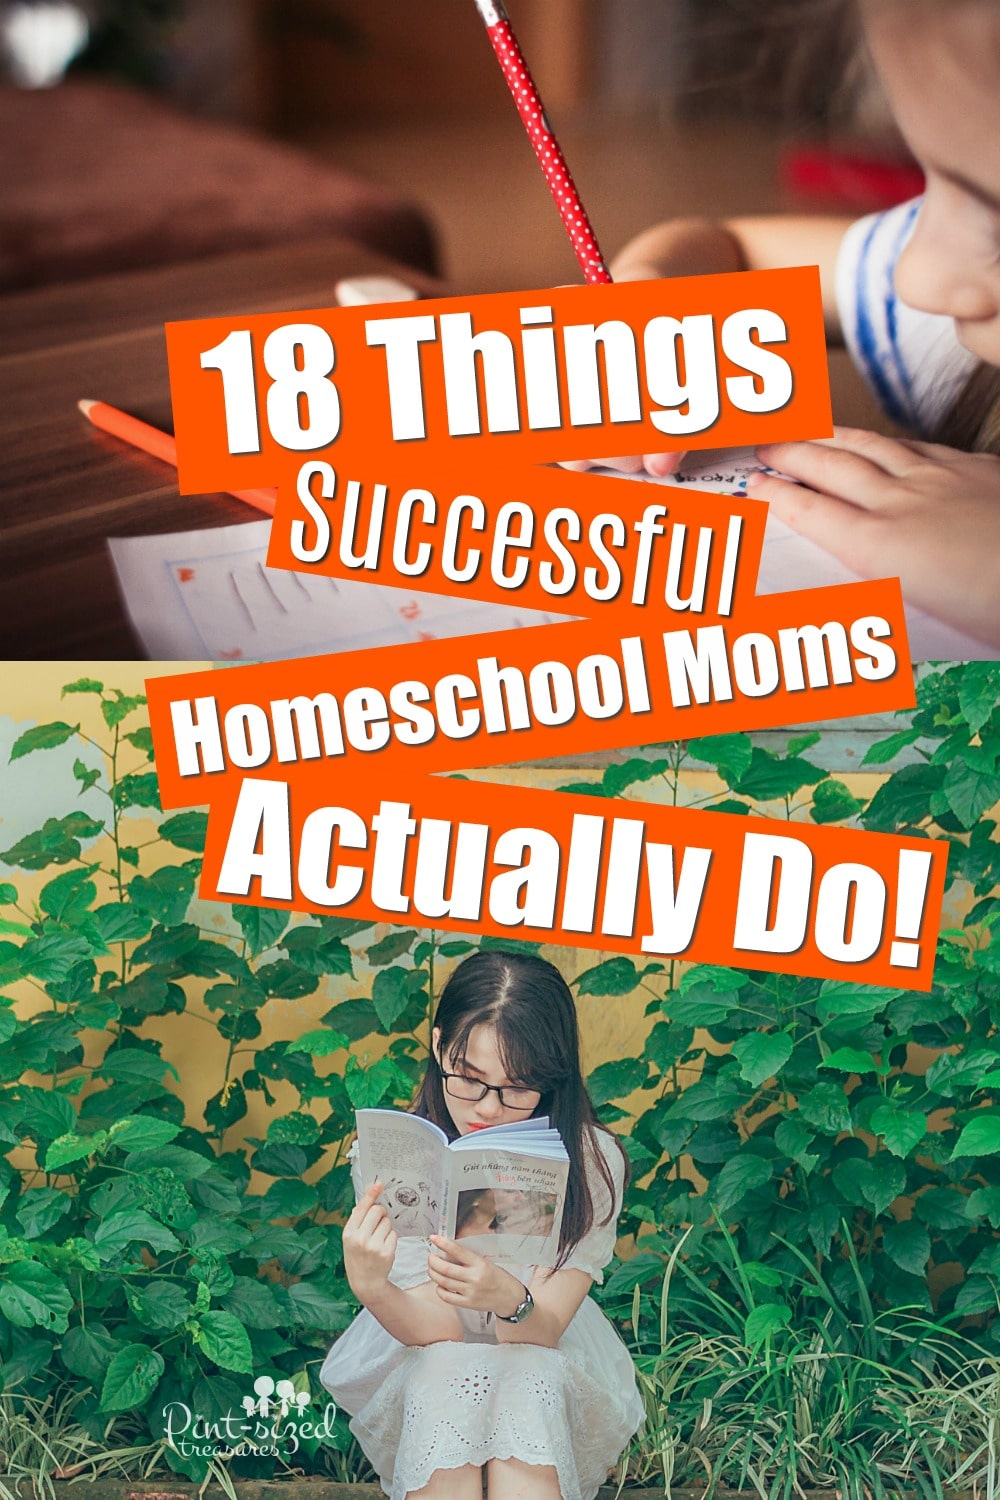 18 Things Successful Homeschool Moms Actually Do!